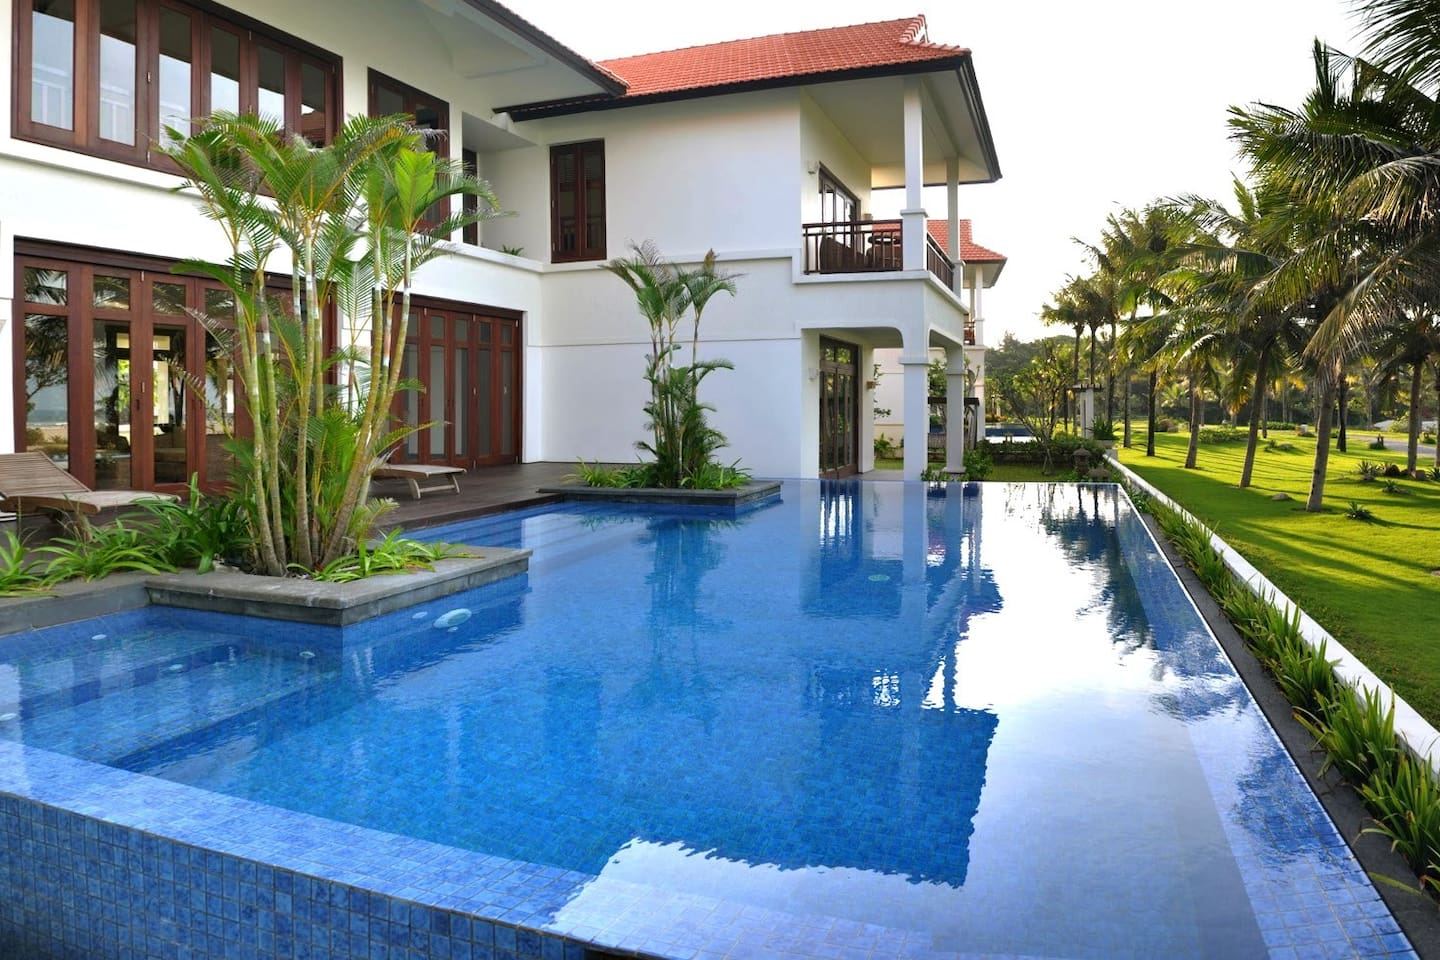 4 Bed-rooms Villa with private pool